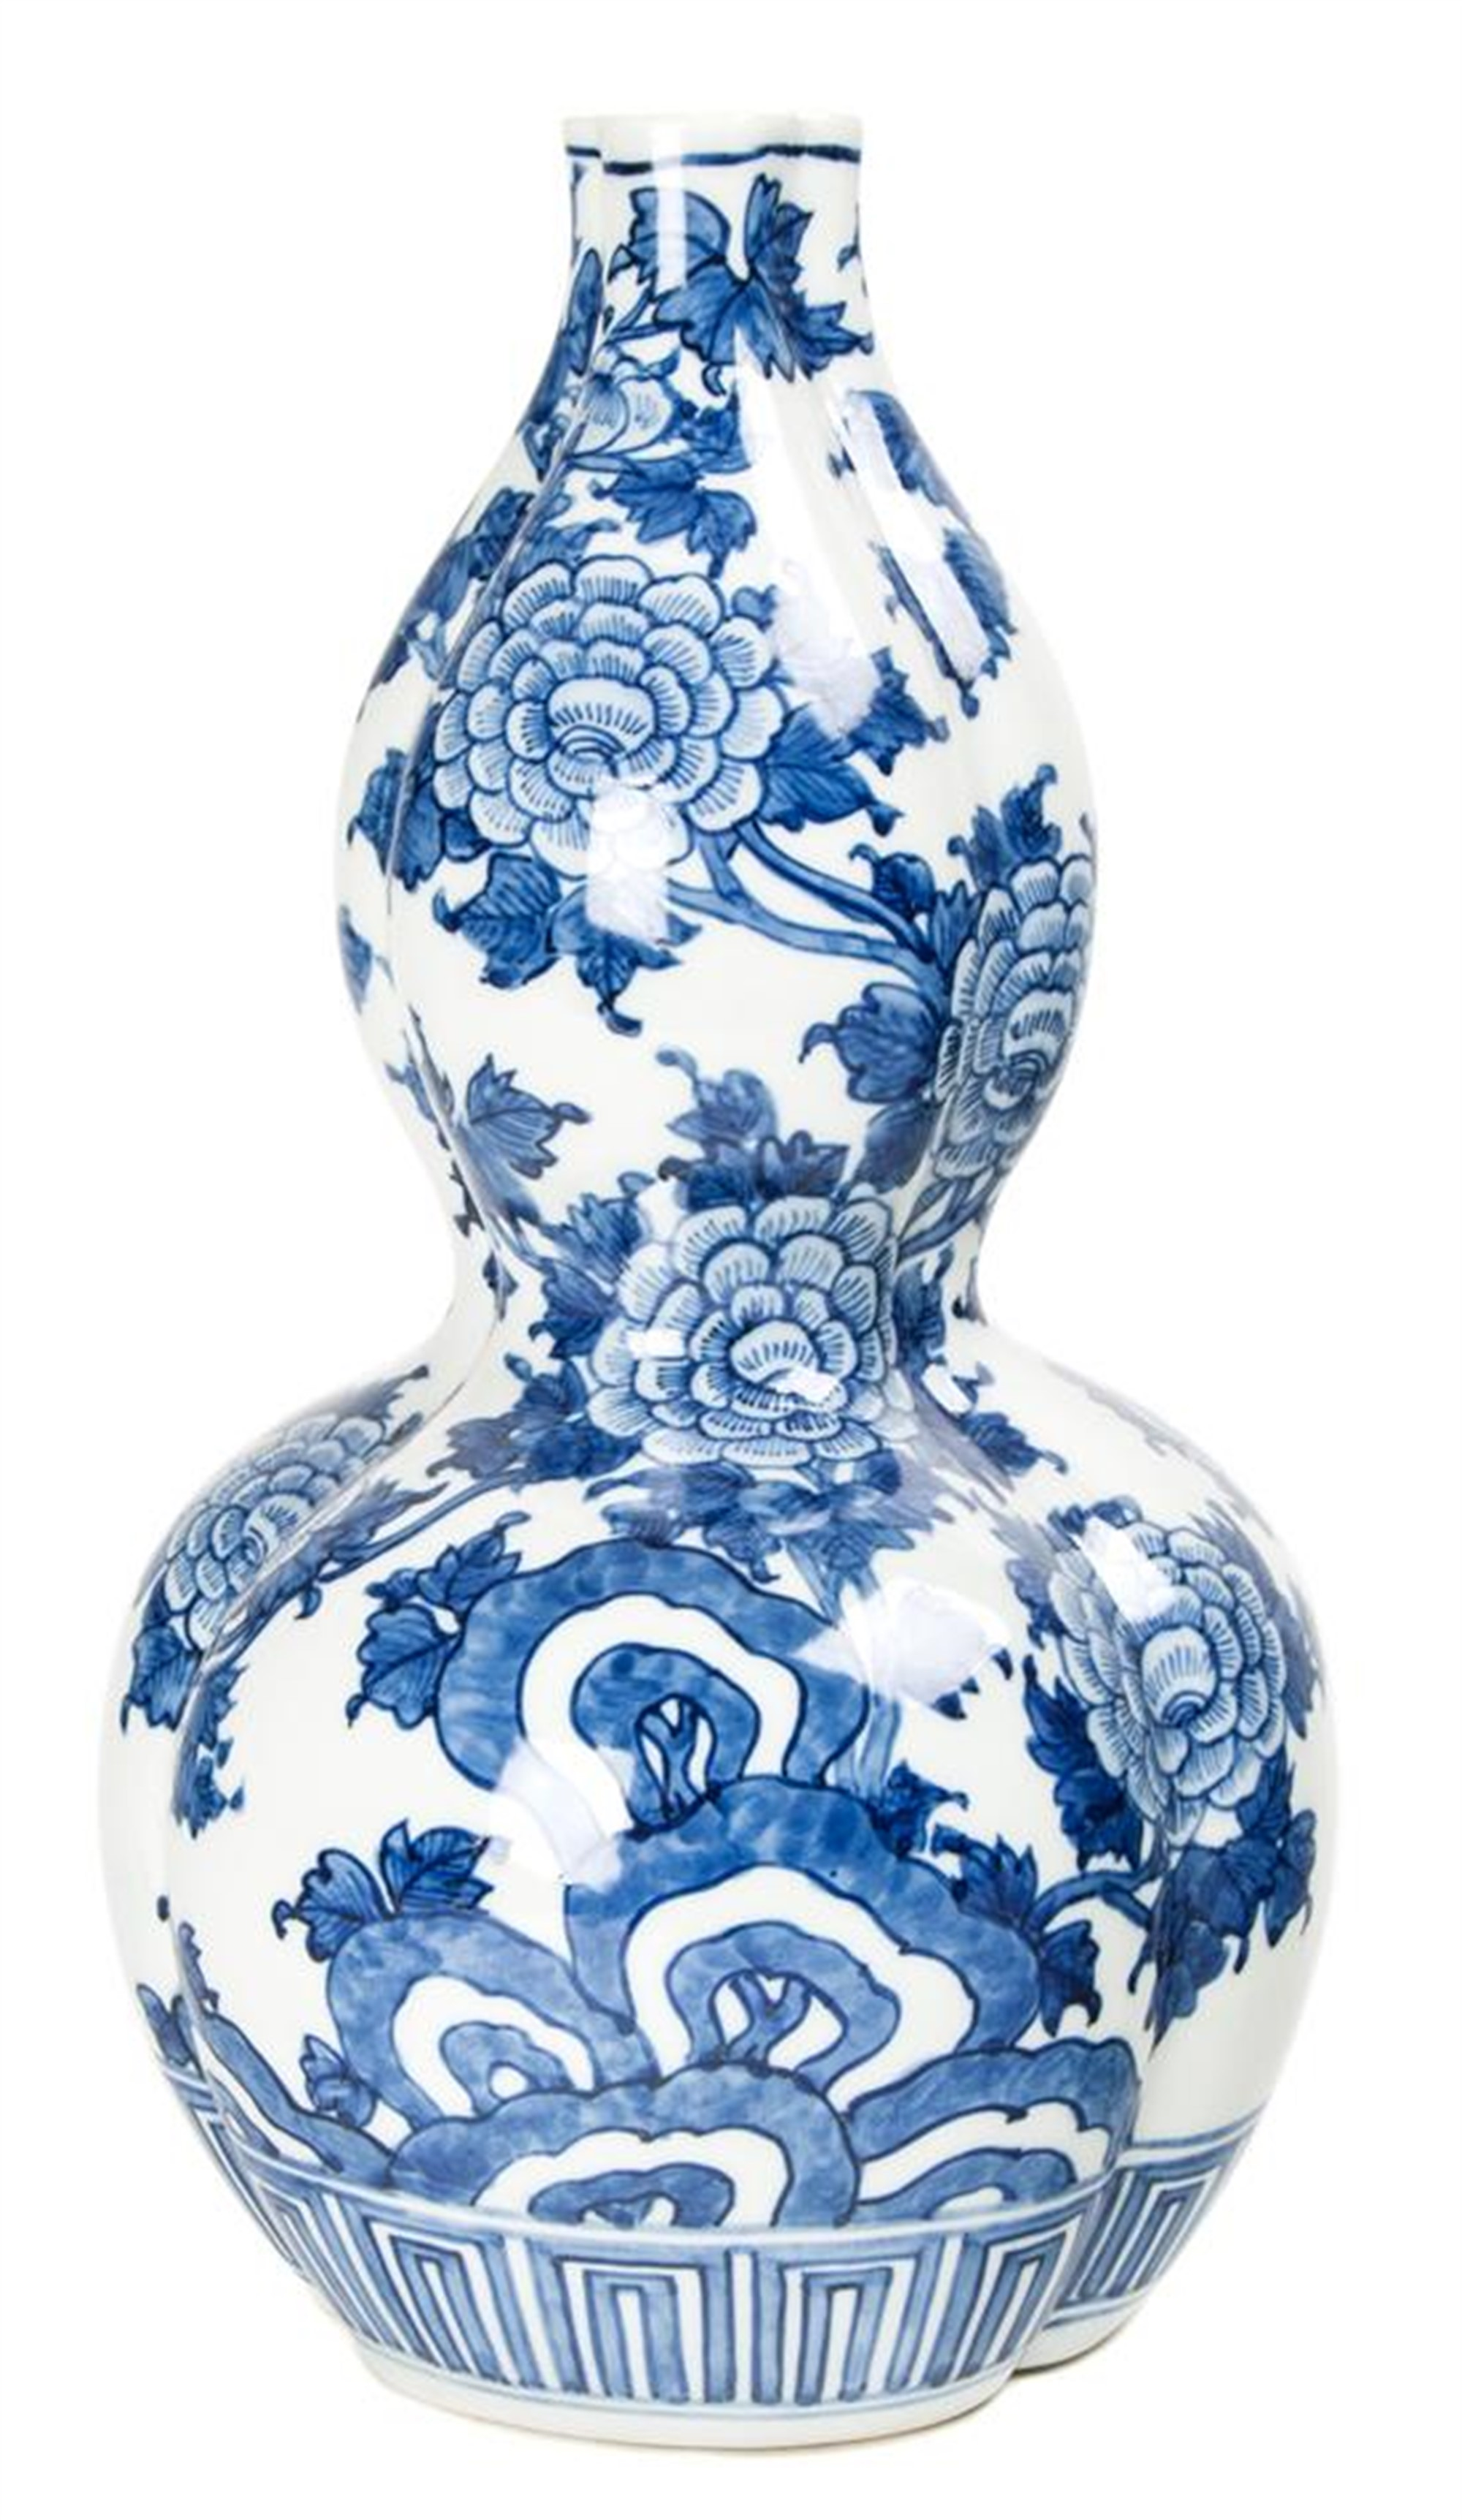 JAPANESE BLUE AND WHITE PORCELAIN DOUBLE GOURD-FORM VASE